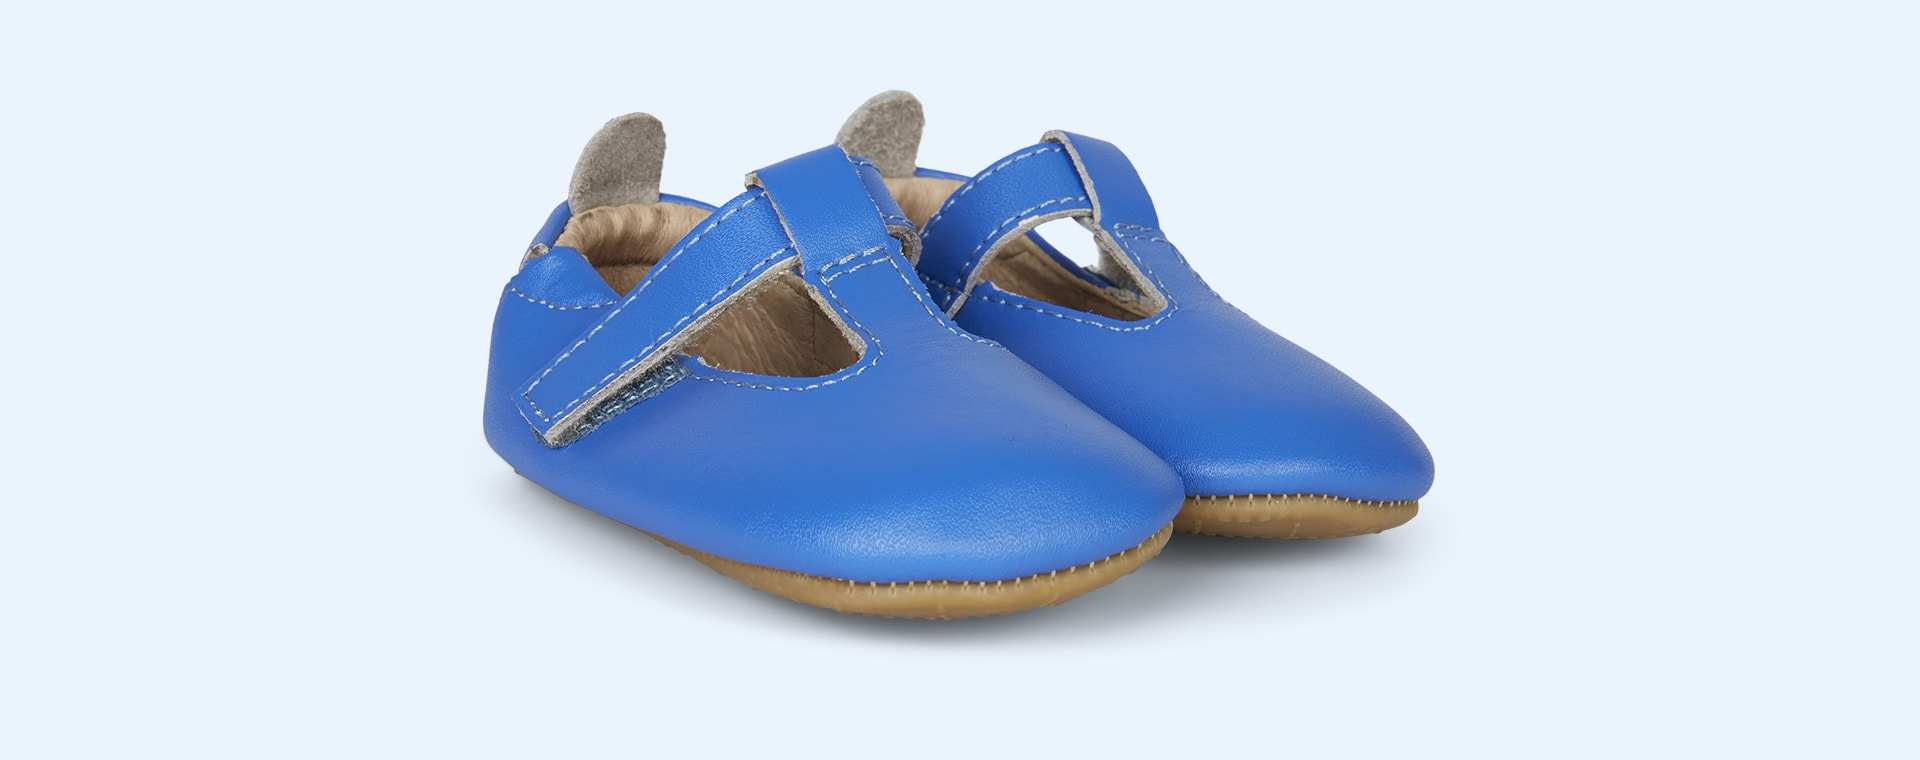 NeonBlue old soles Omhe- Bub Soft Sole Shoe